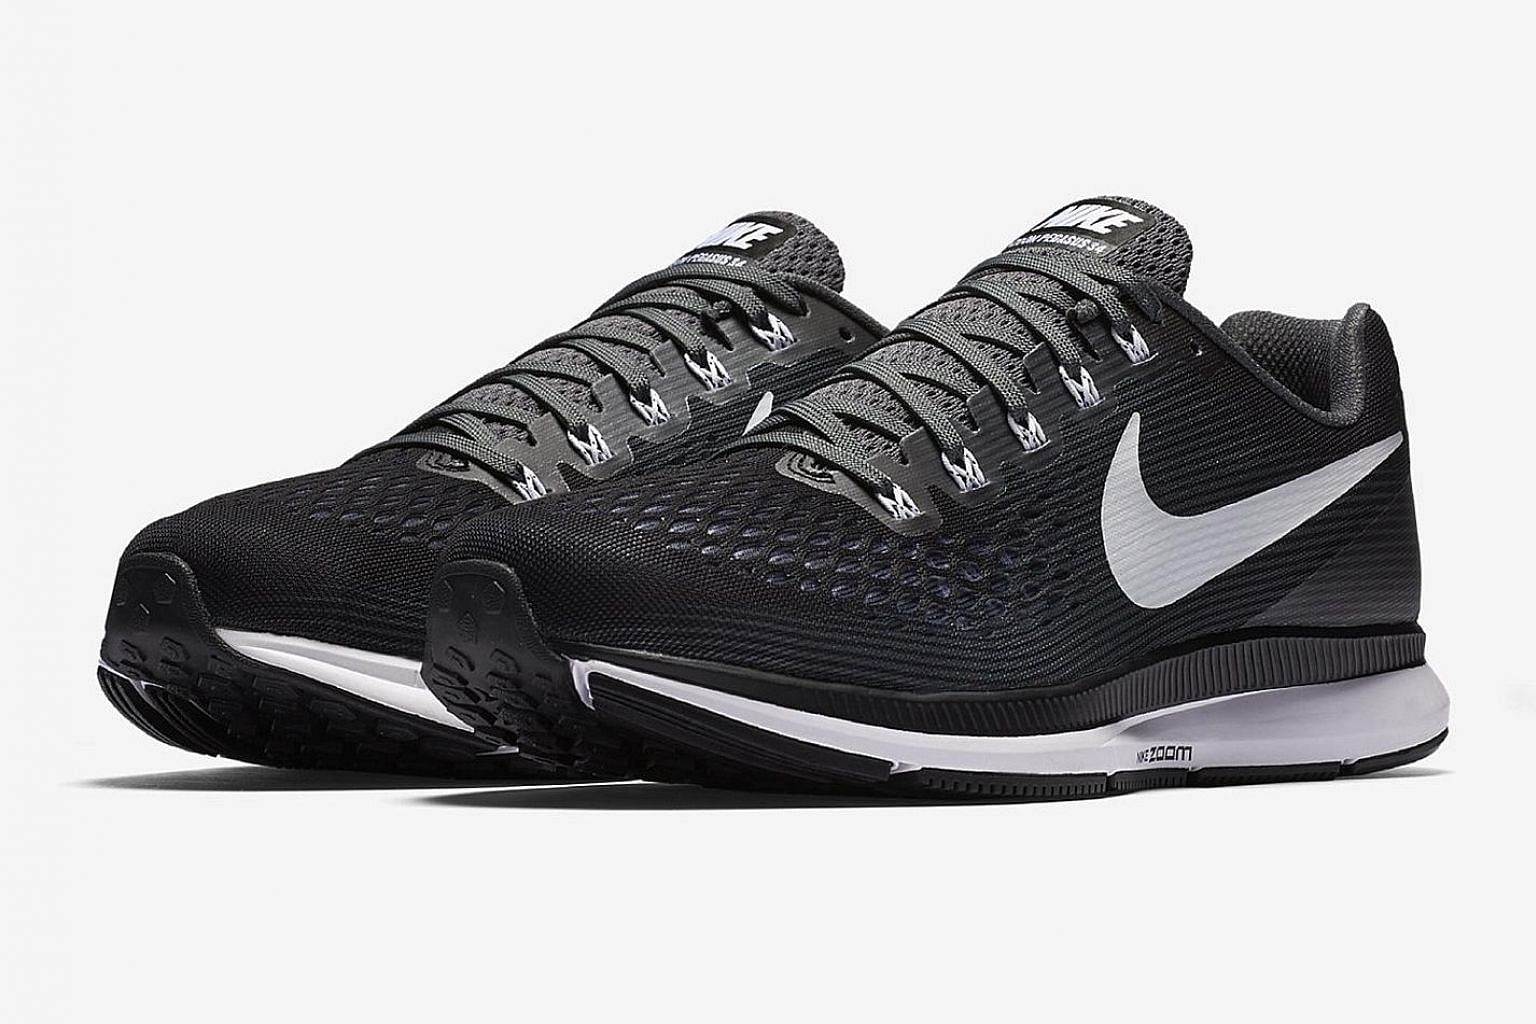 The upper of the Nike's Air Zoom Pegasus 34 is made of a Flymesh that is said to provide better ventilation and support for your feet.